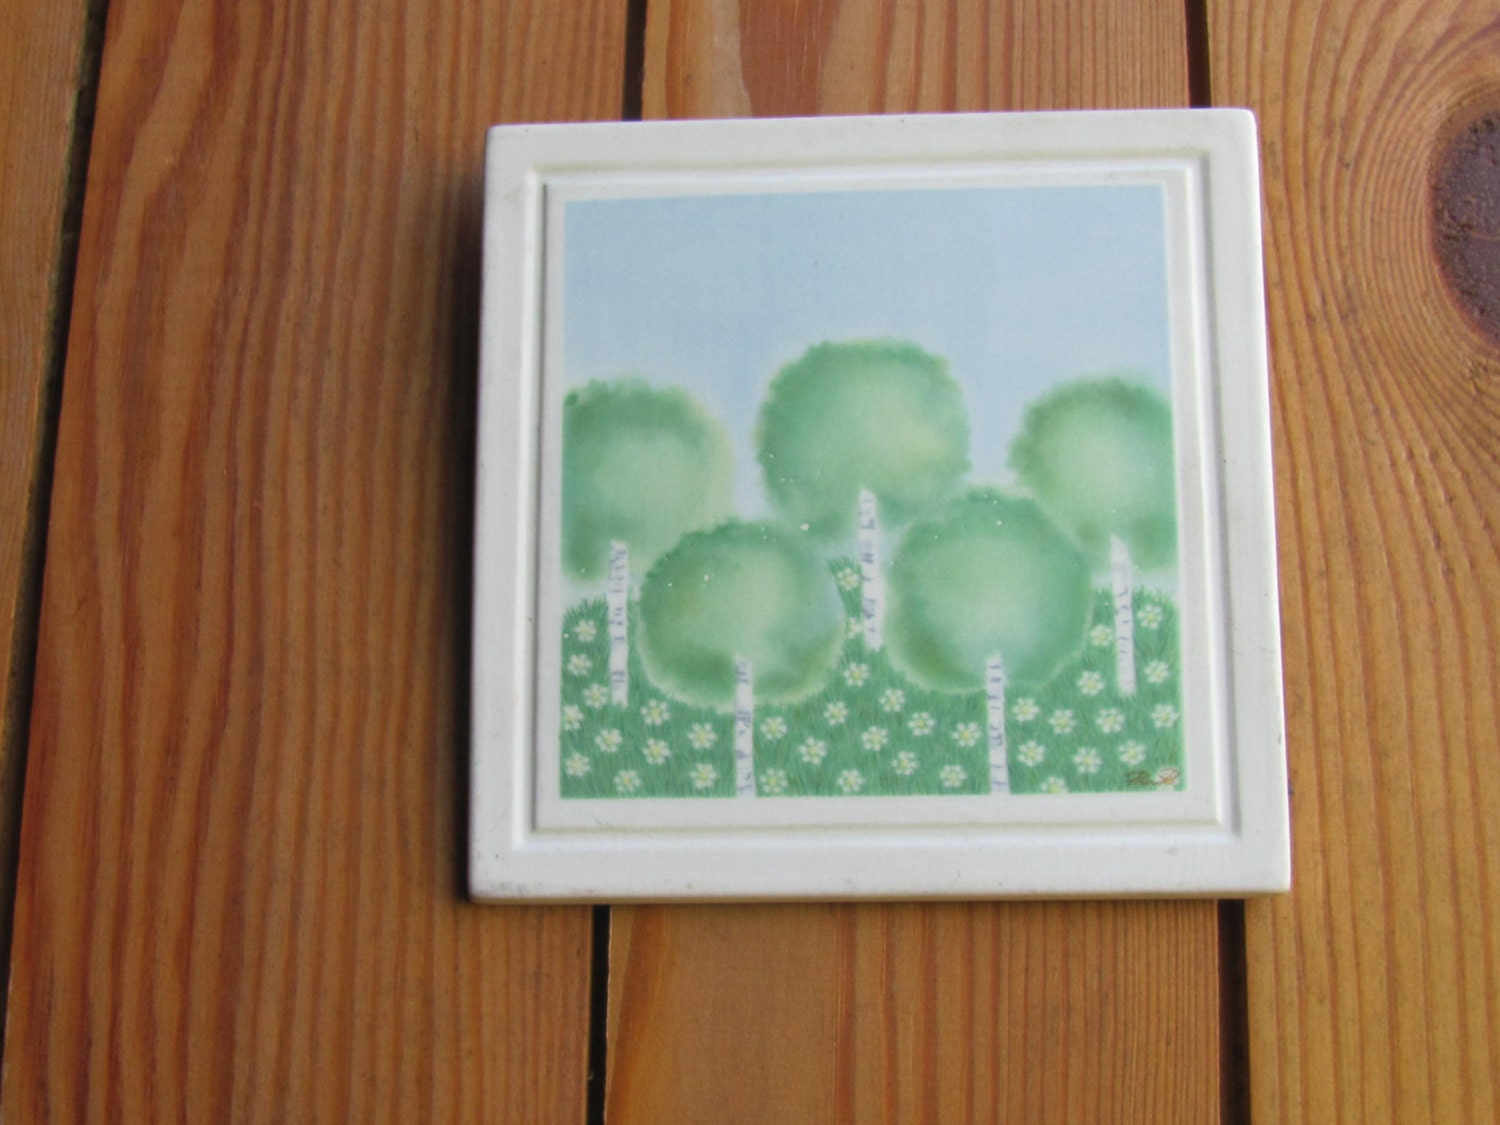 Swedish Vintage Porcelain Wall Plaque Tile With Birch Trees Gustavsberg  Villa Rosa Design By Pia R